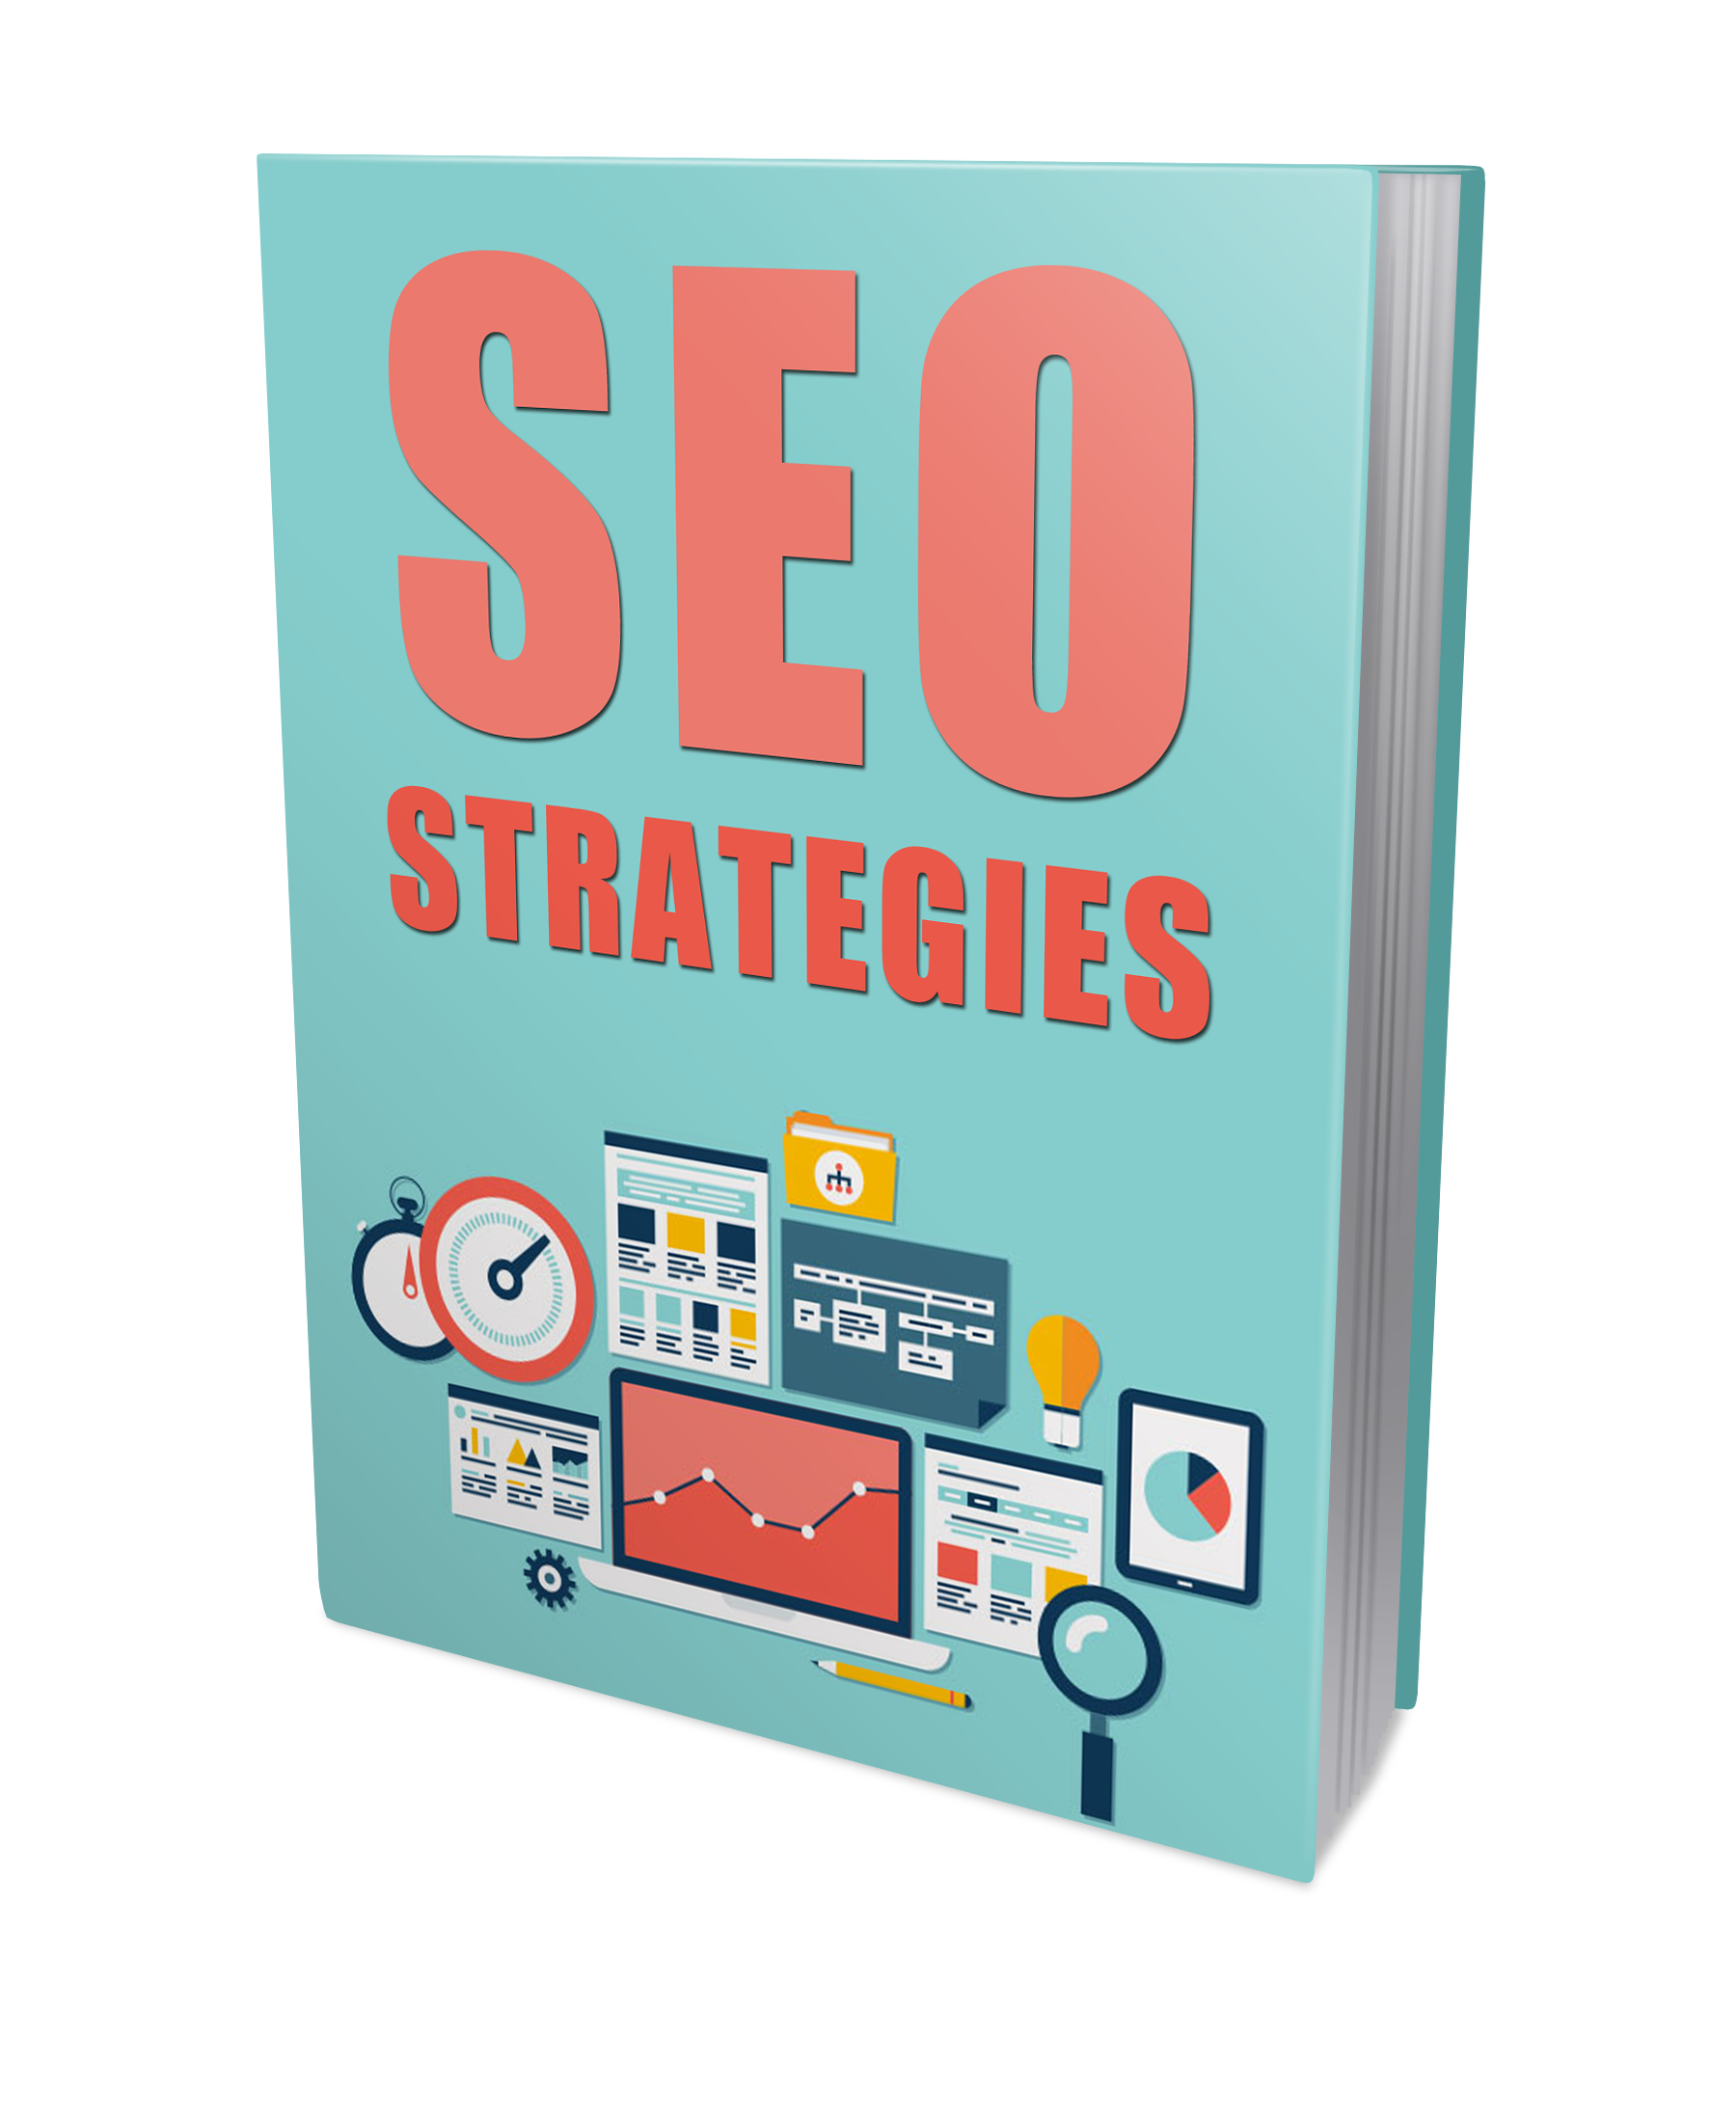 SEO Strategies rank your website within 2 minutes.